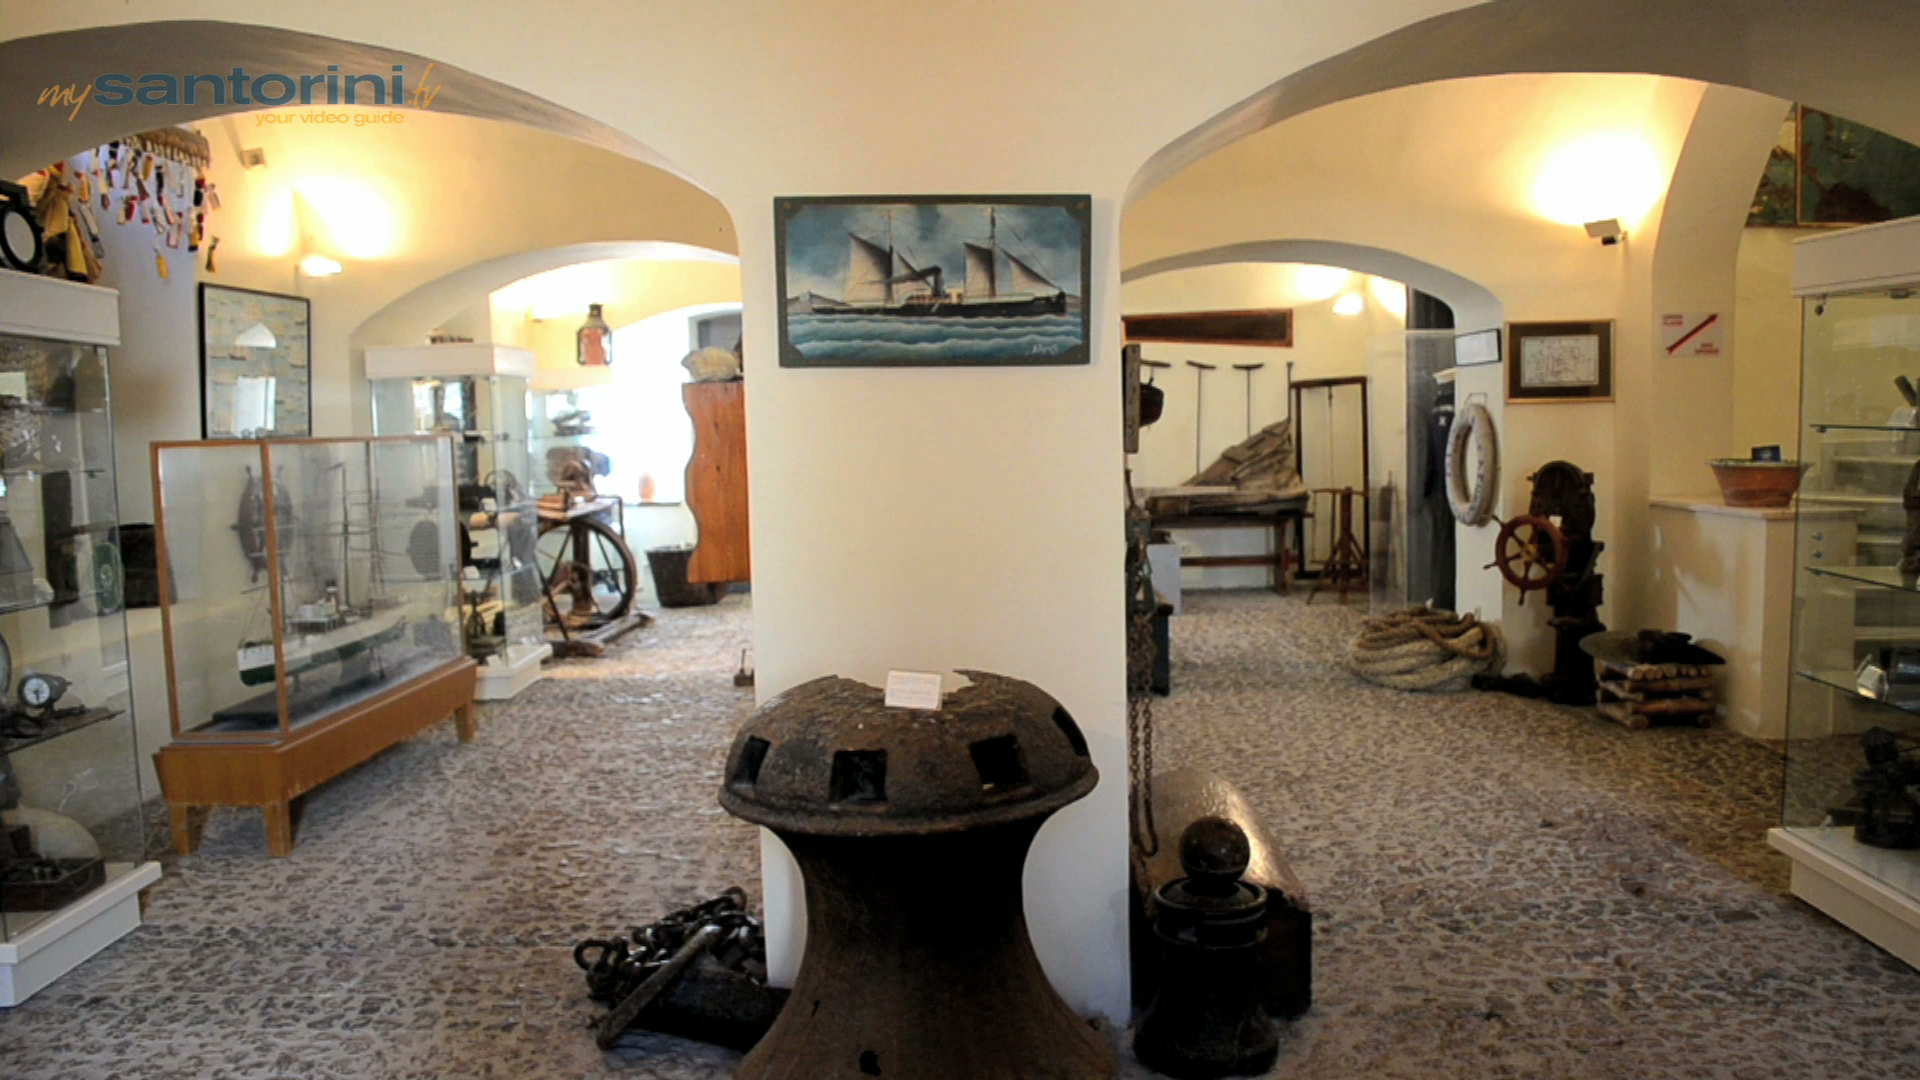 Best Museums in Santorini